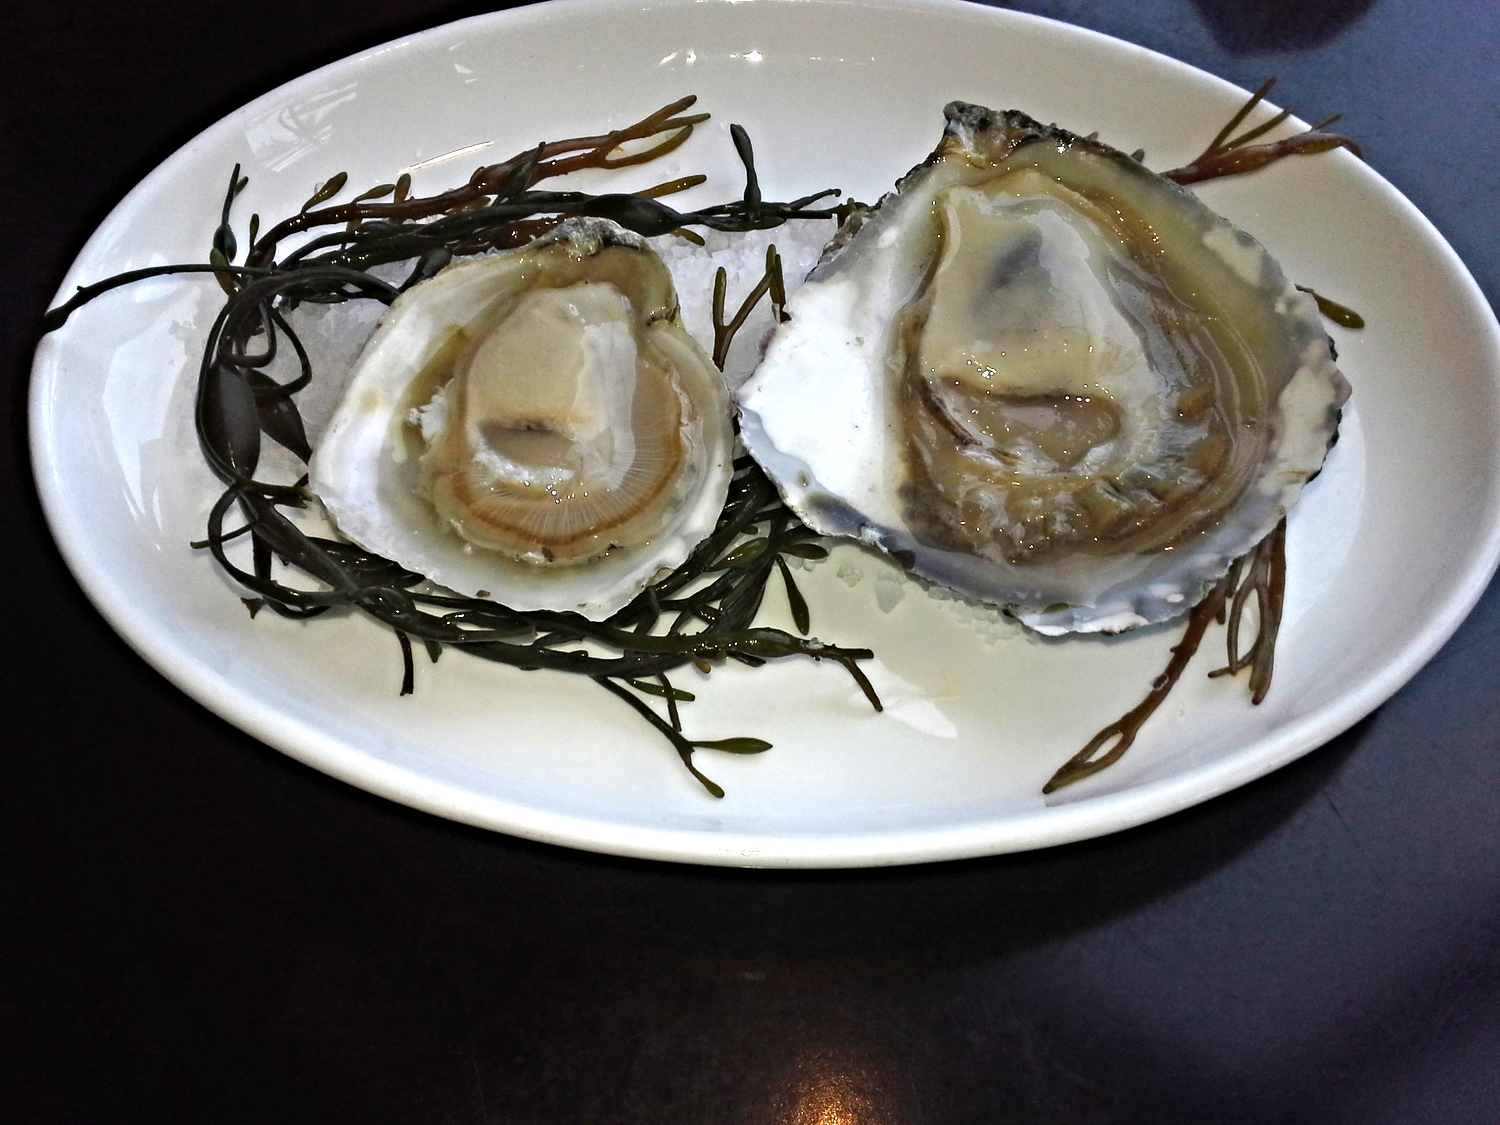 Click on the image and it will lead to our Oyster 101 page, oyster knowledge is important.